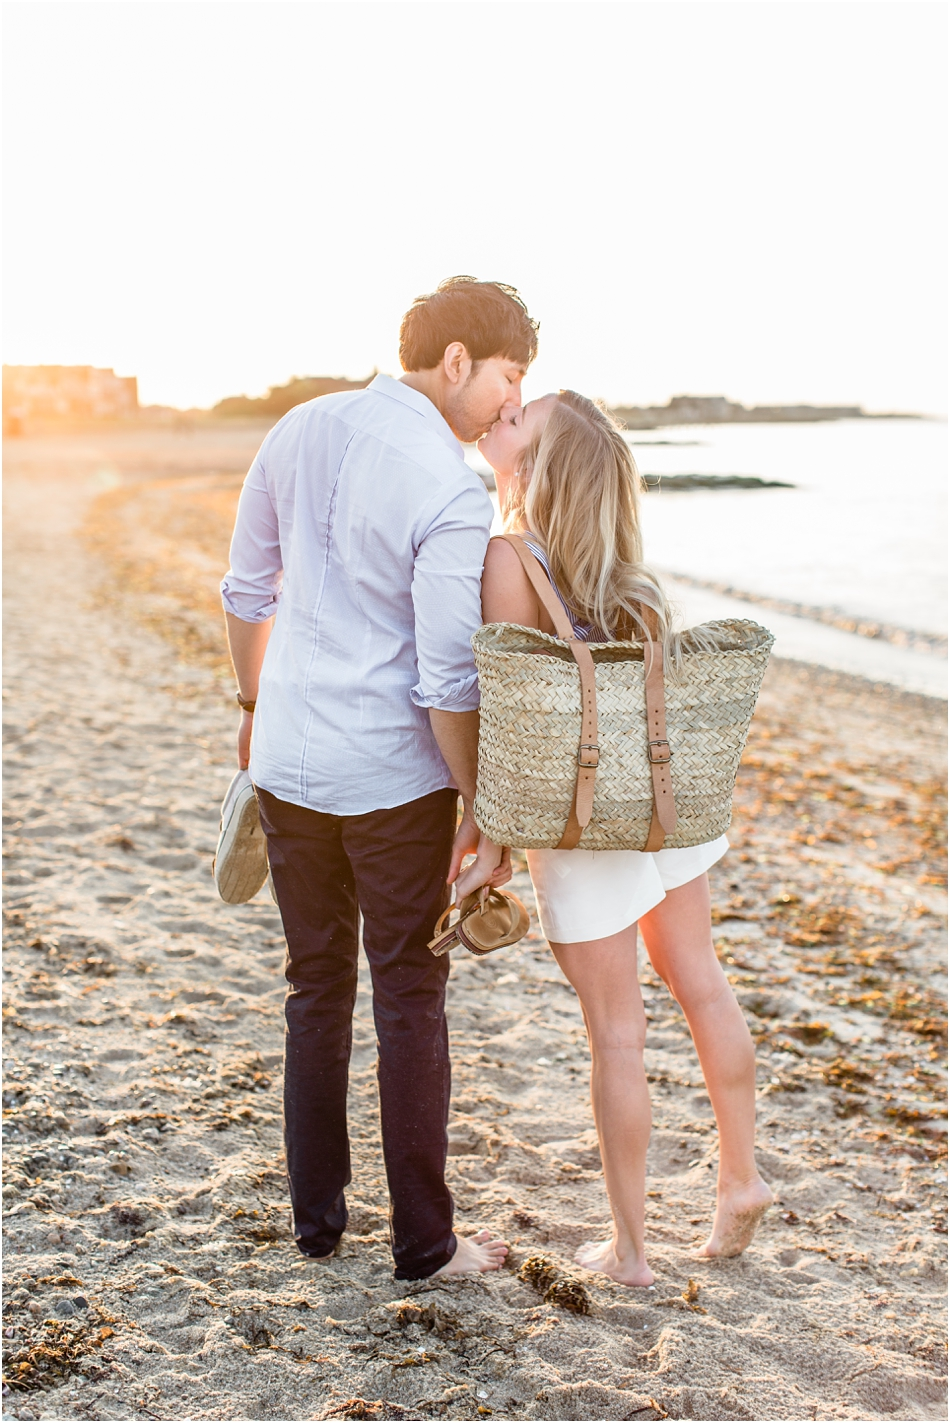 falmouth_beach_engagement_green_pond_boston_massachusetts_cape_cod_new_england_wedding_photographer_Meredith_Jane_Photography_photo_1637.jpg